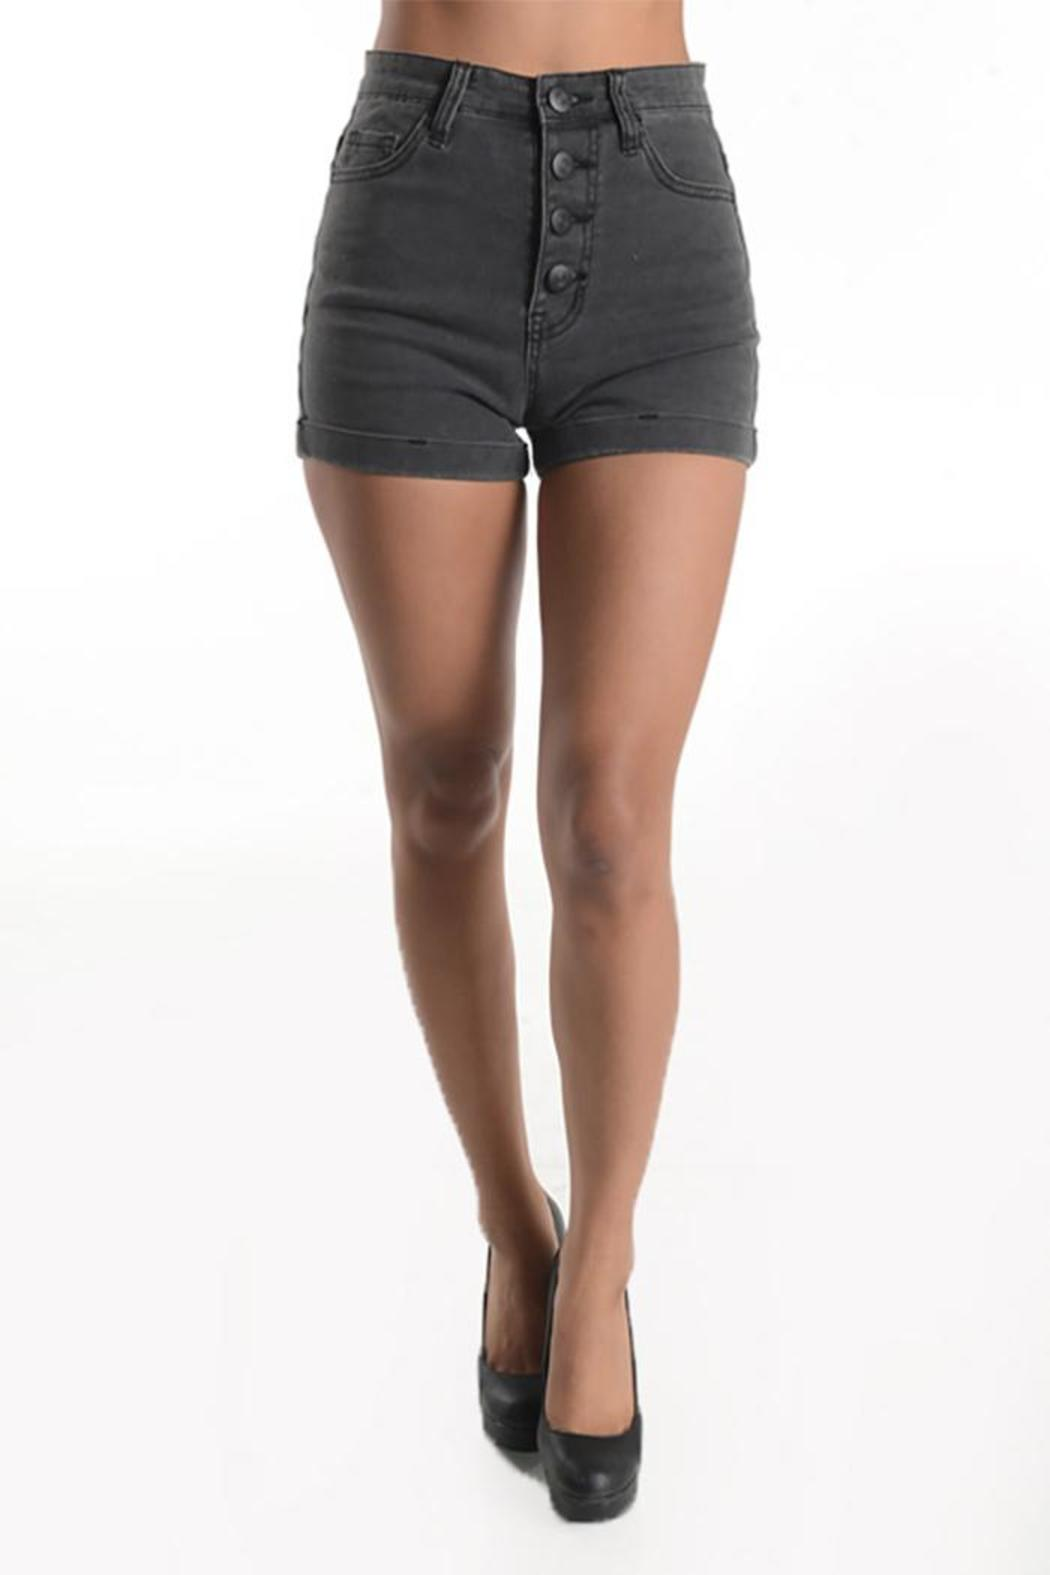 Sparrow High Rise Black Shorts From Michigan By Sparrow